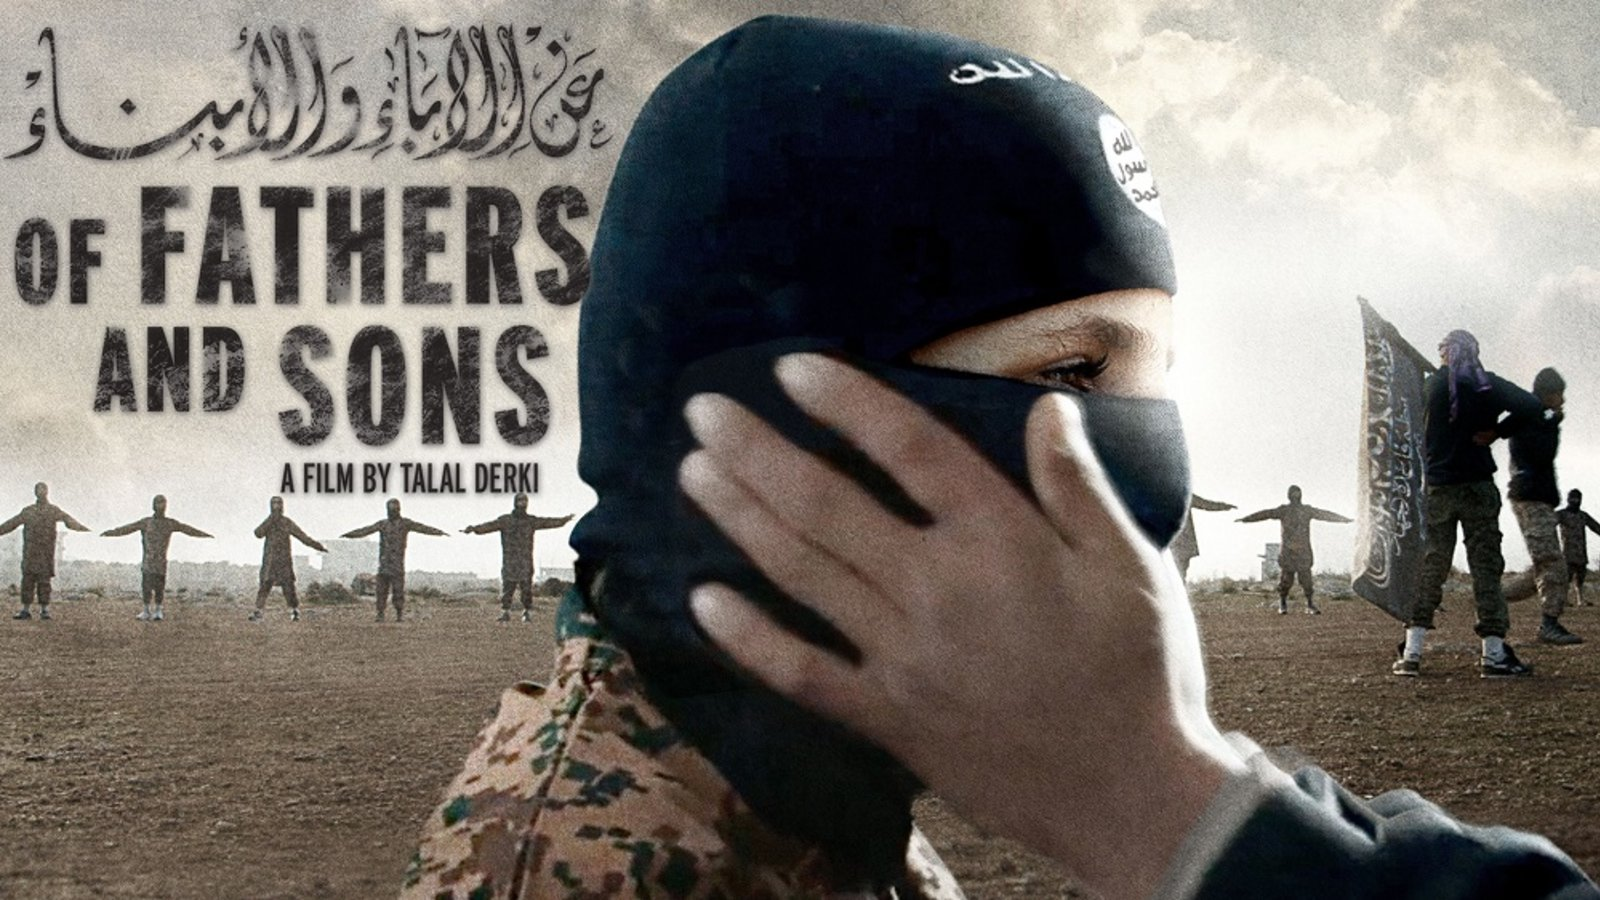 Of Fathers and Sons - Following a Radical Islamist Family in Syria